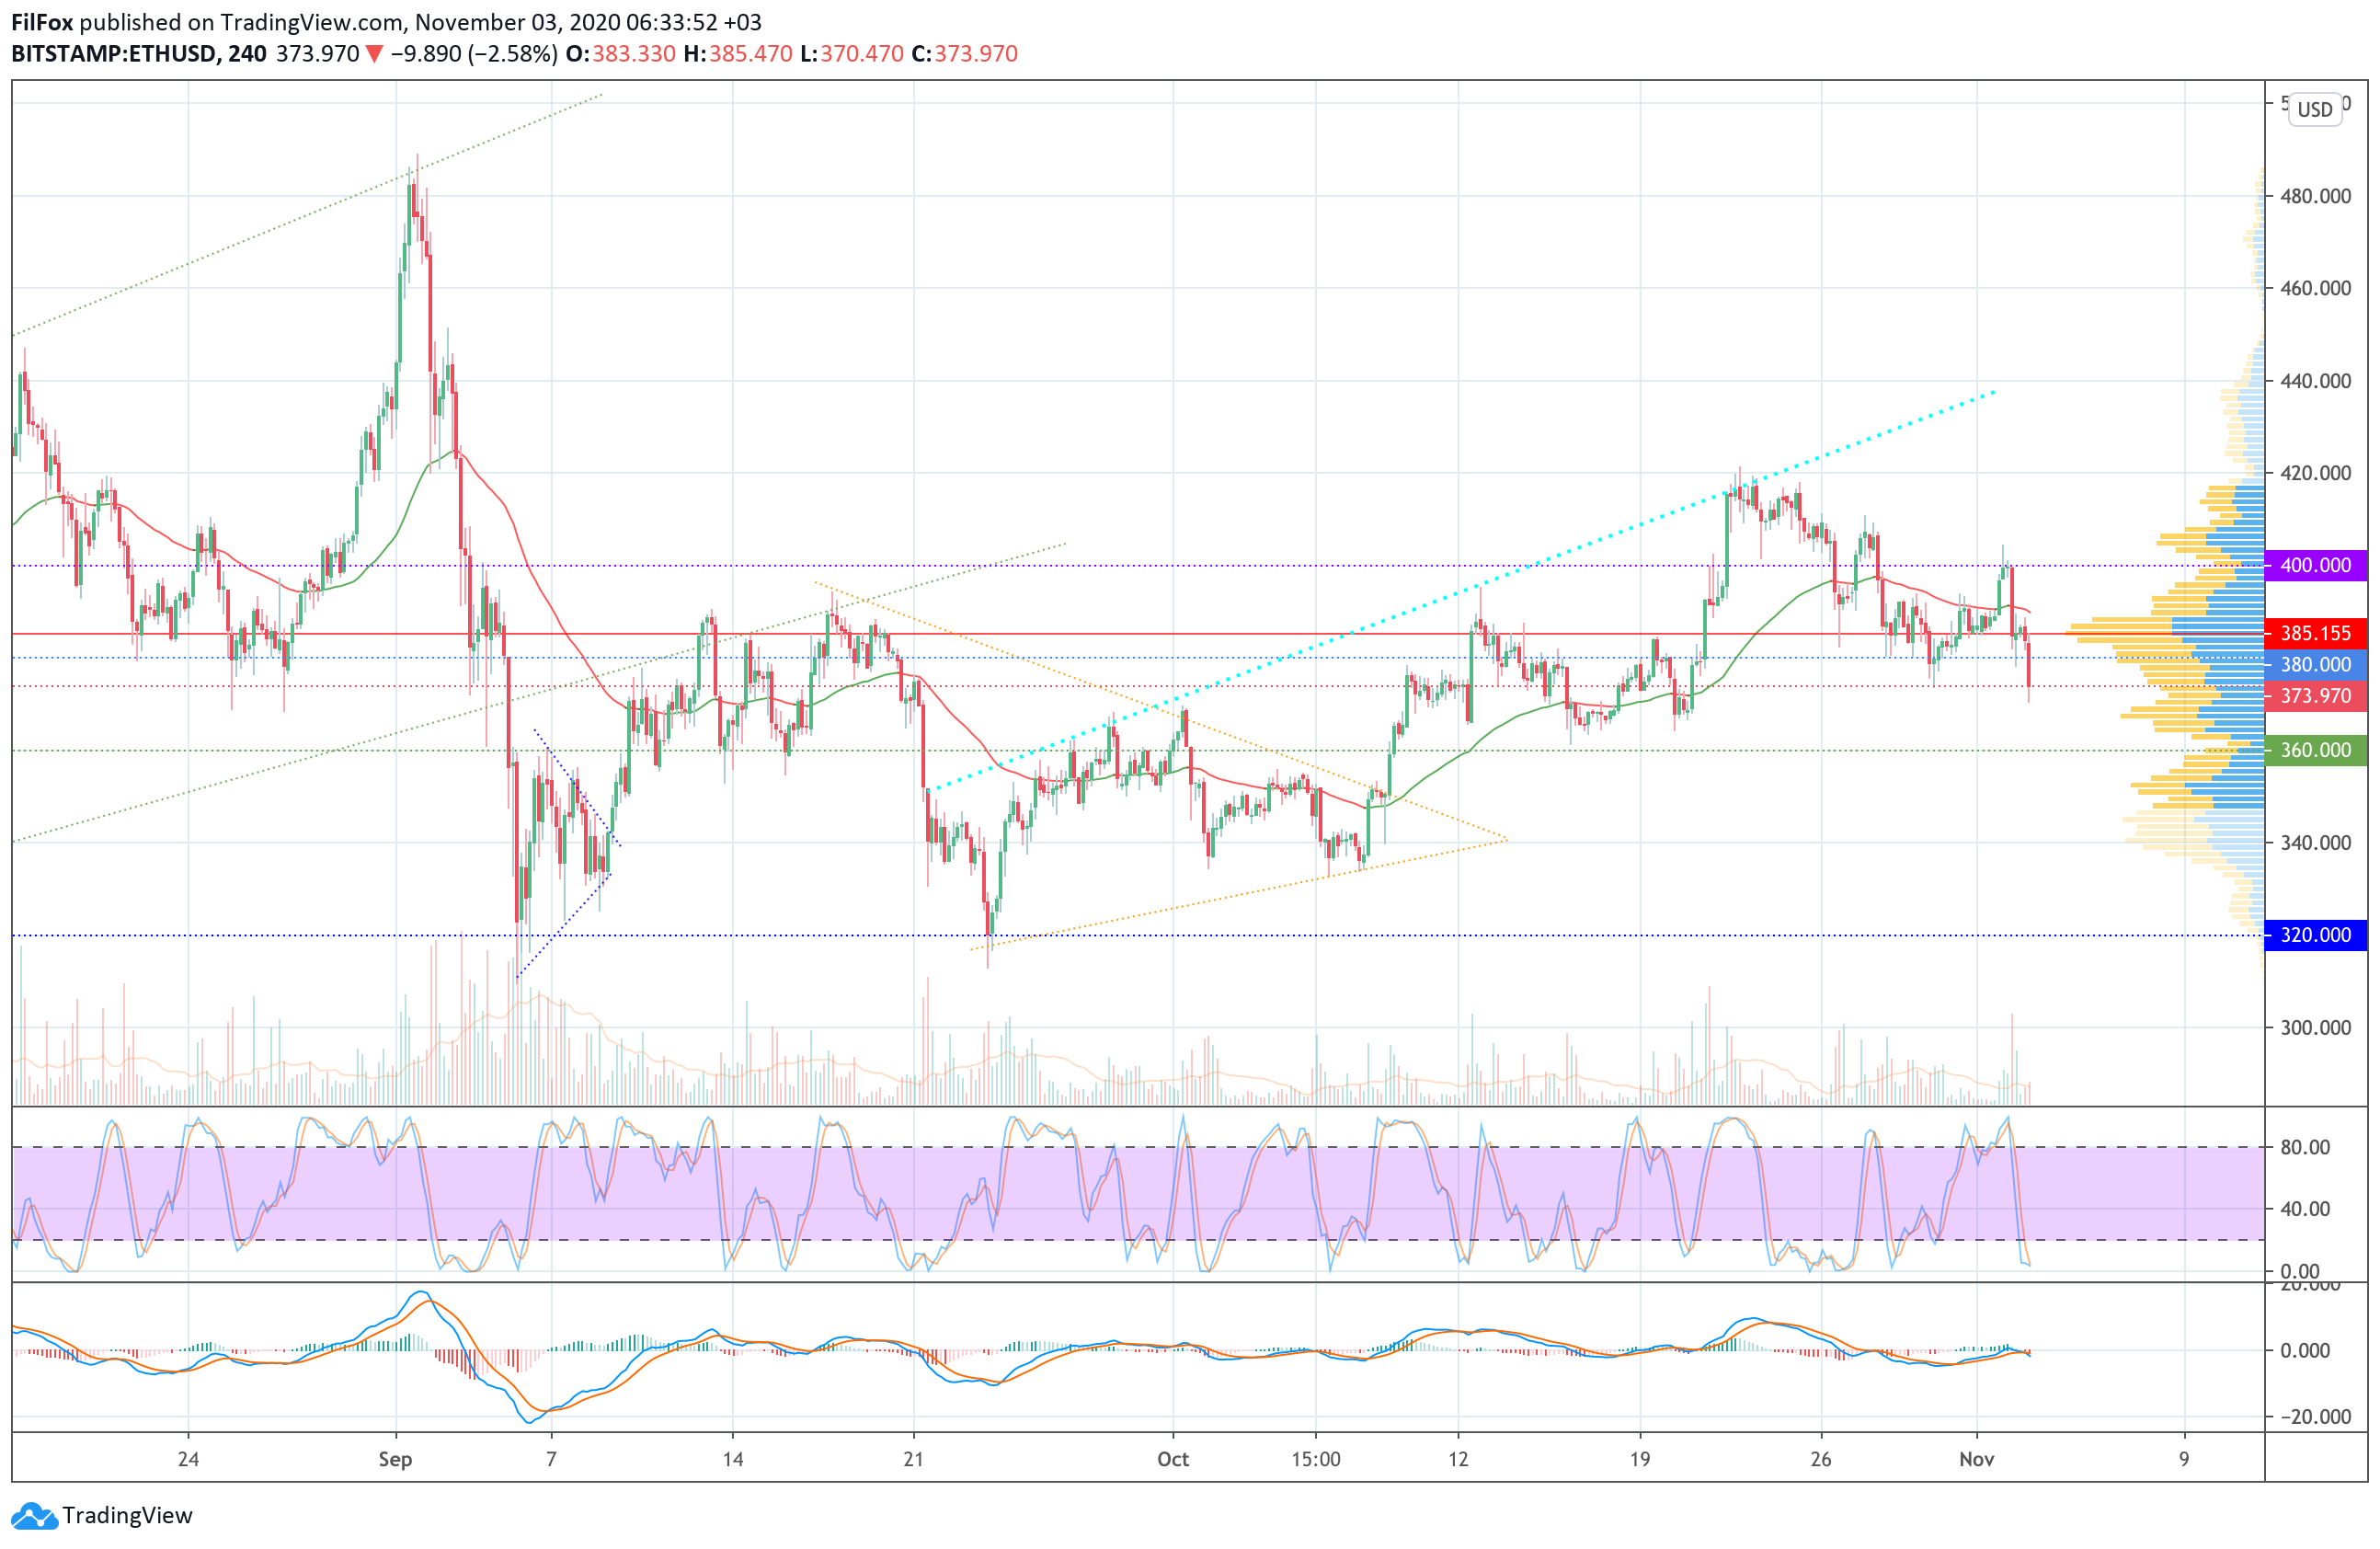 Analysis of prices for Bitcoin, Ethereum, Ripple for 11/03/2020